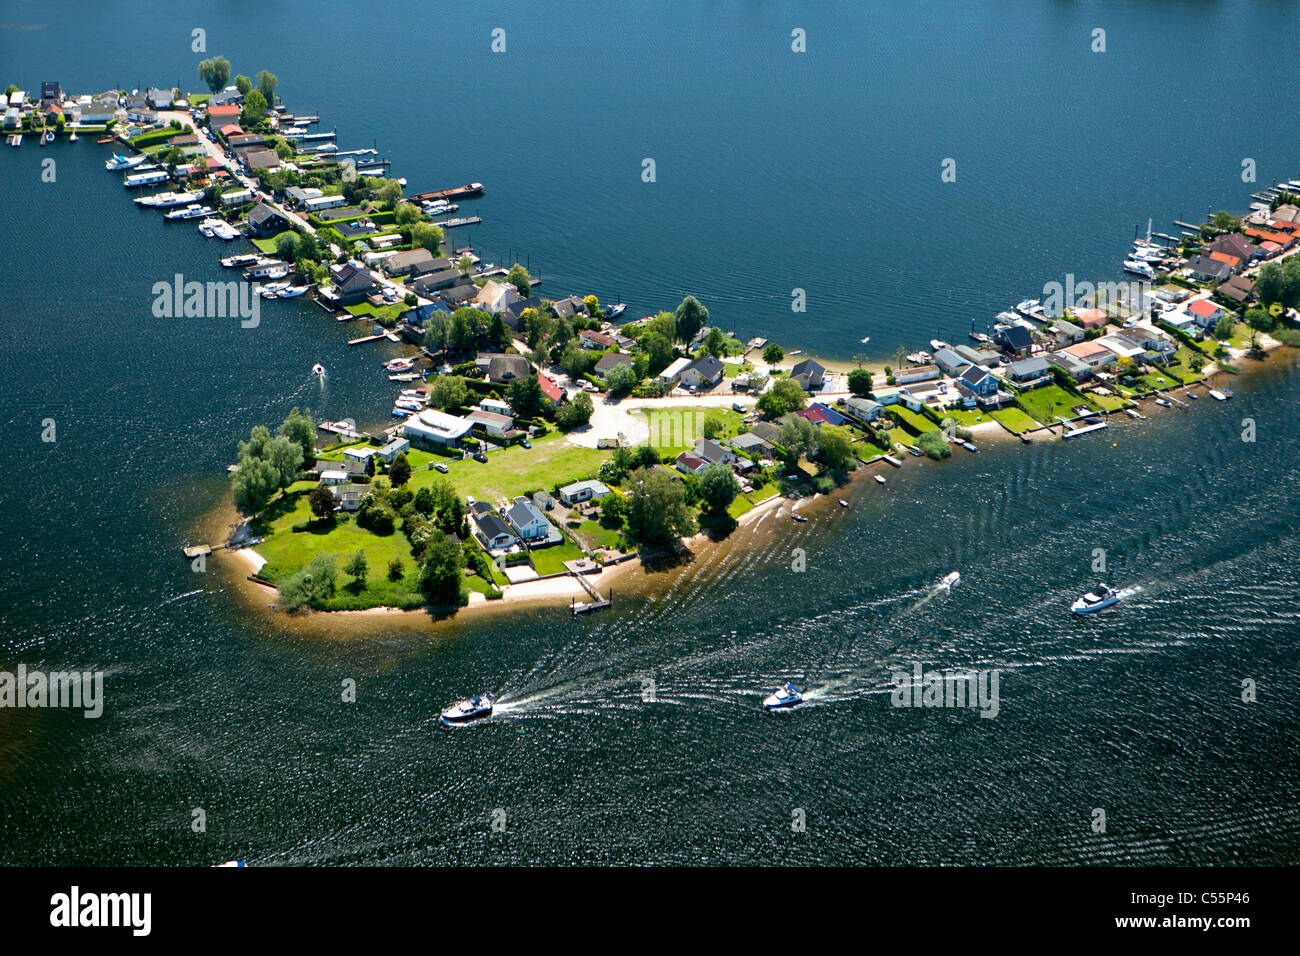 The Netherlands, Veen, Aerial, holiday houses on peninsula. - Stock Image